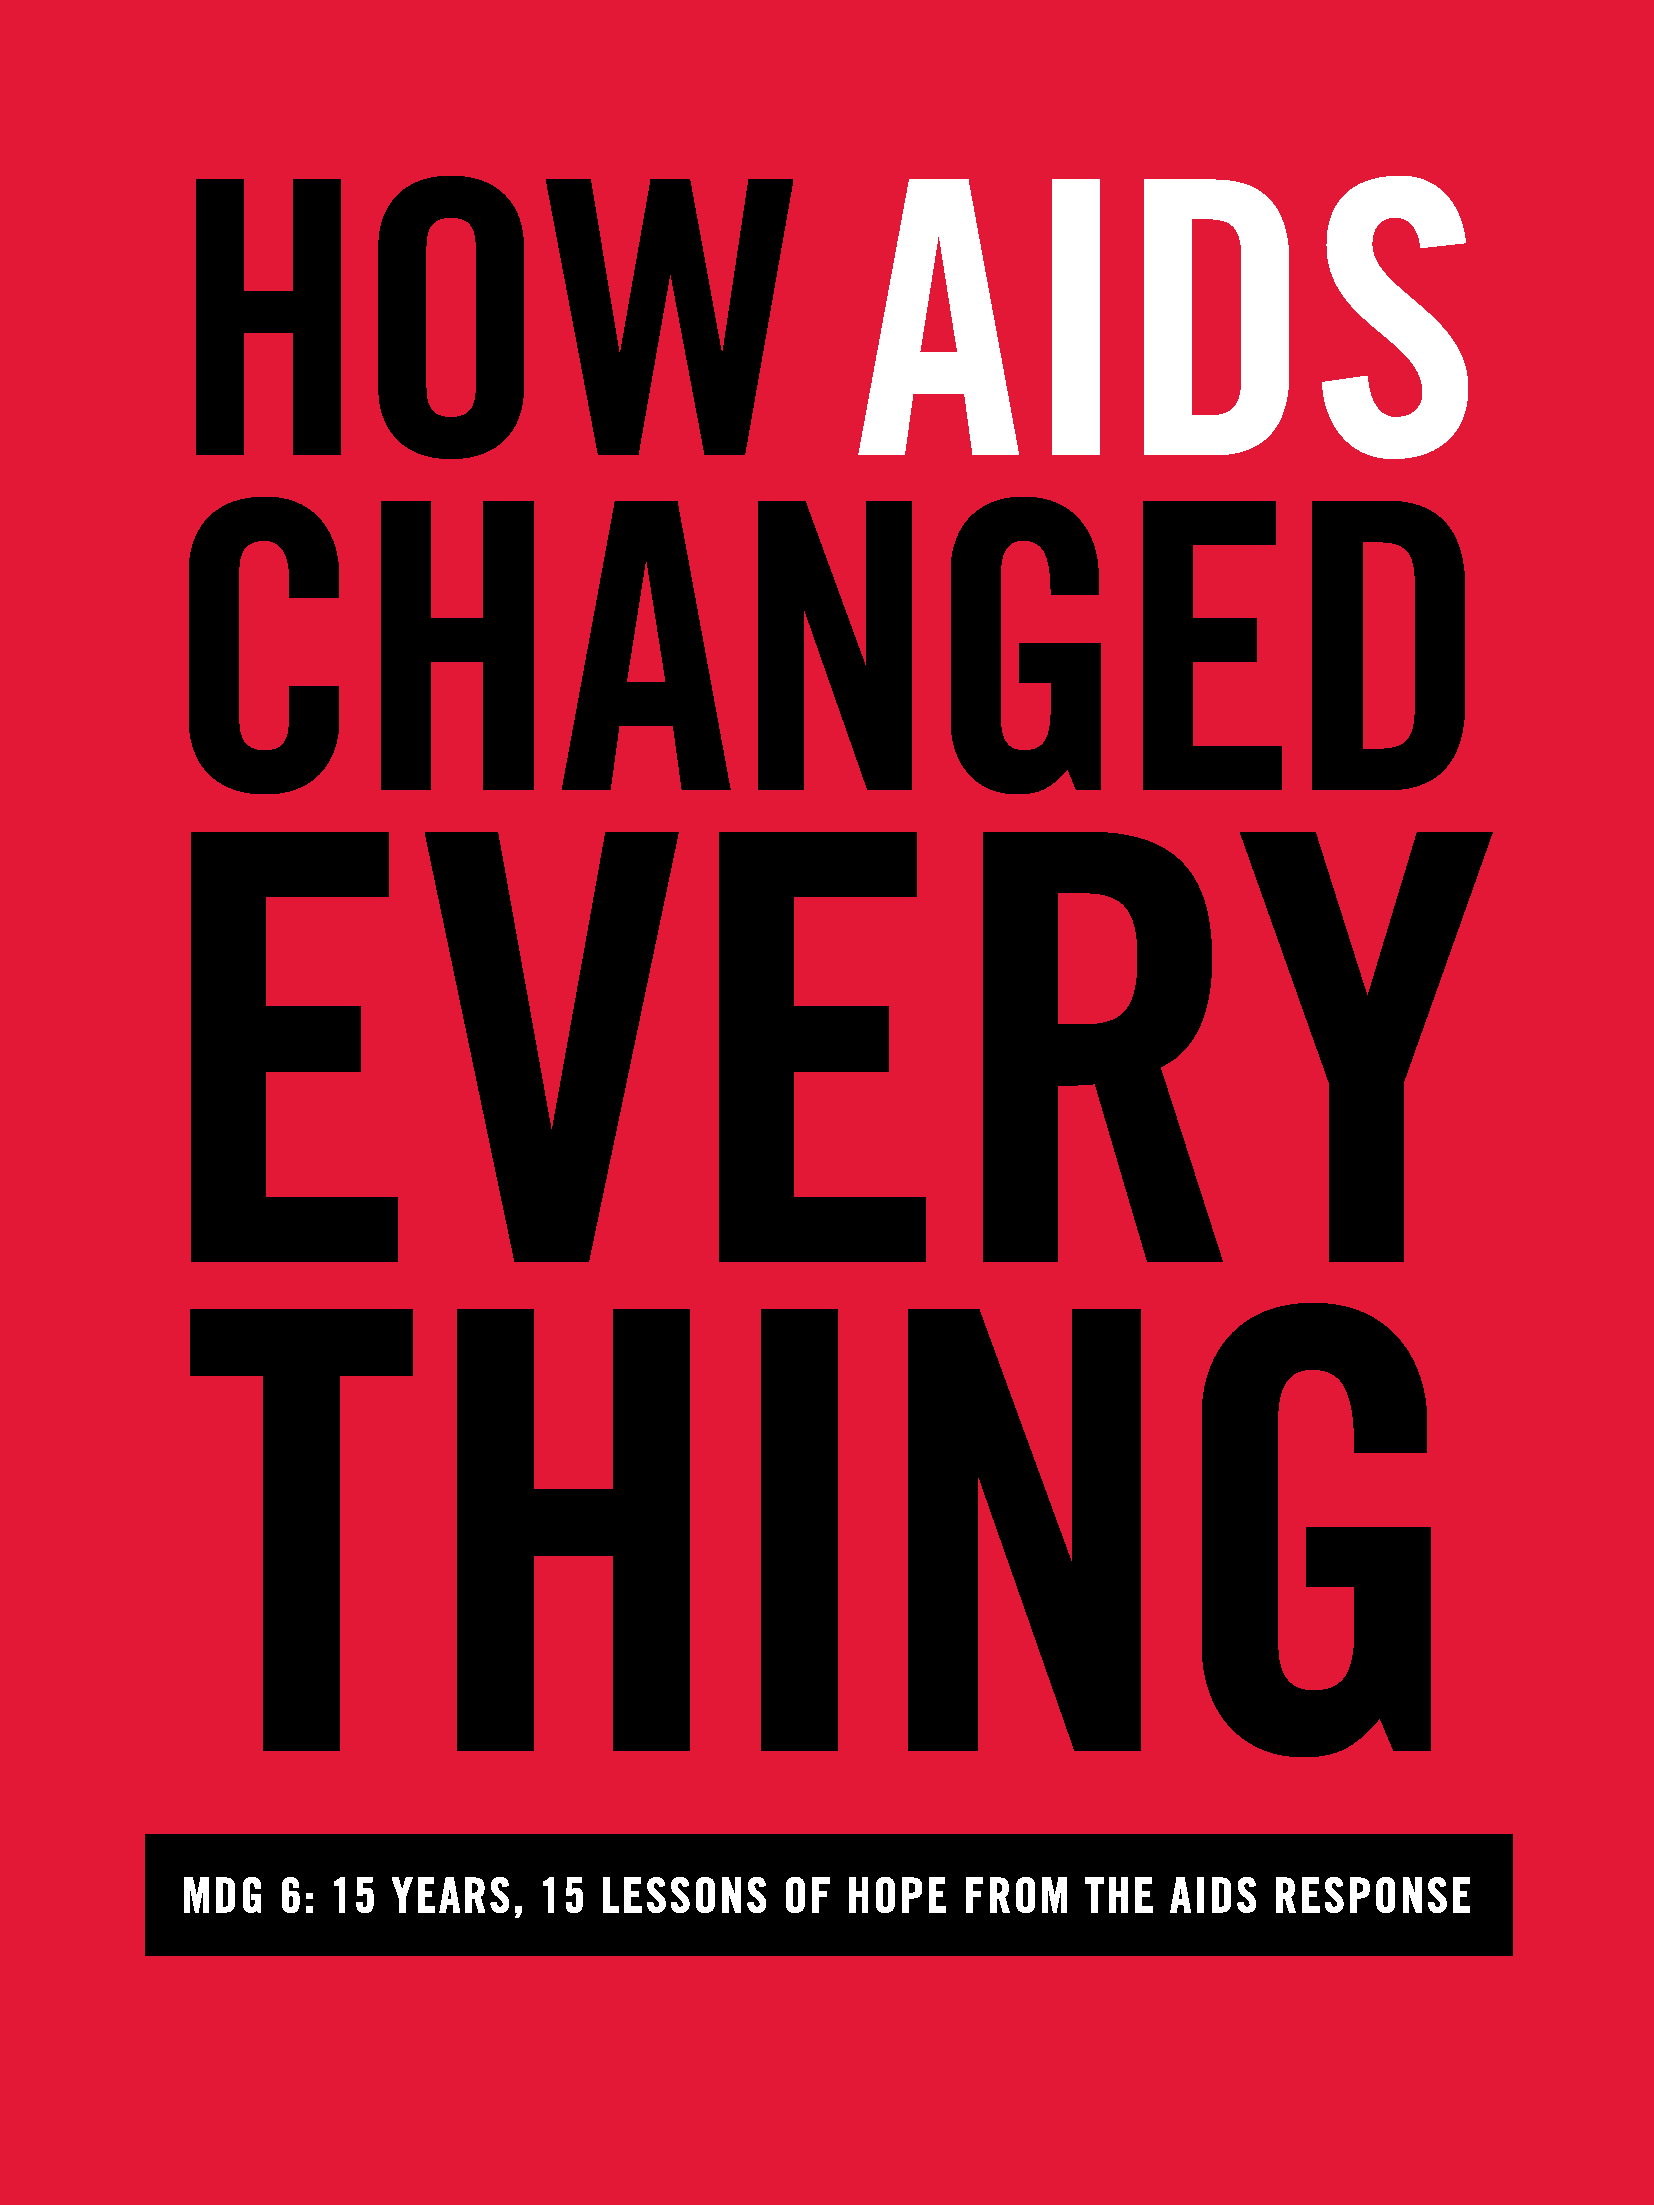 How Aids Changed Every Thing